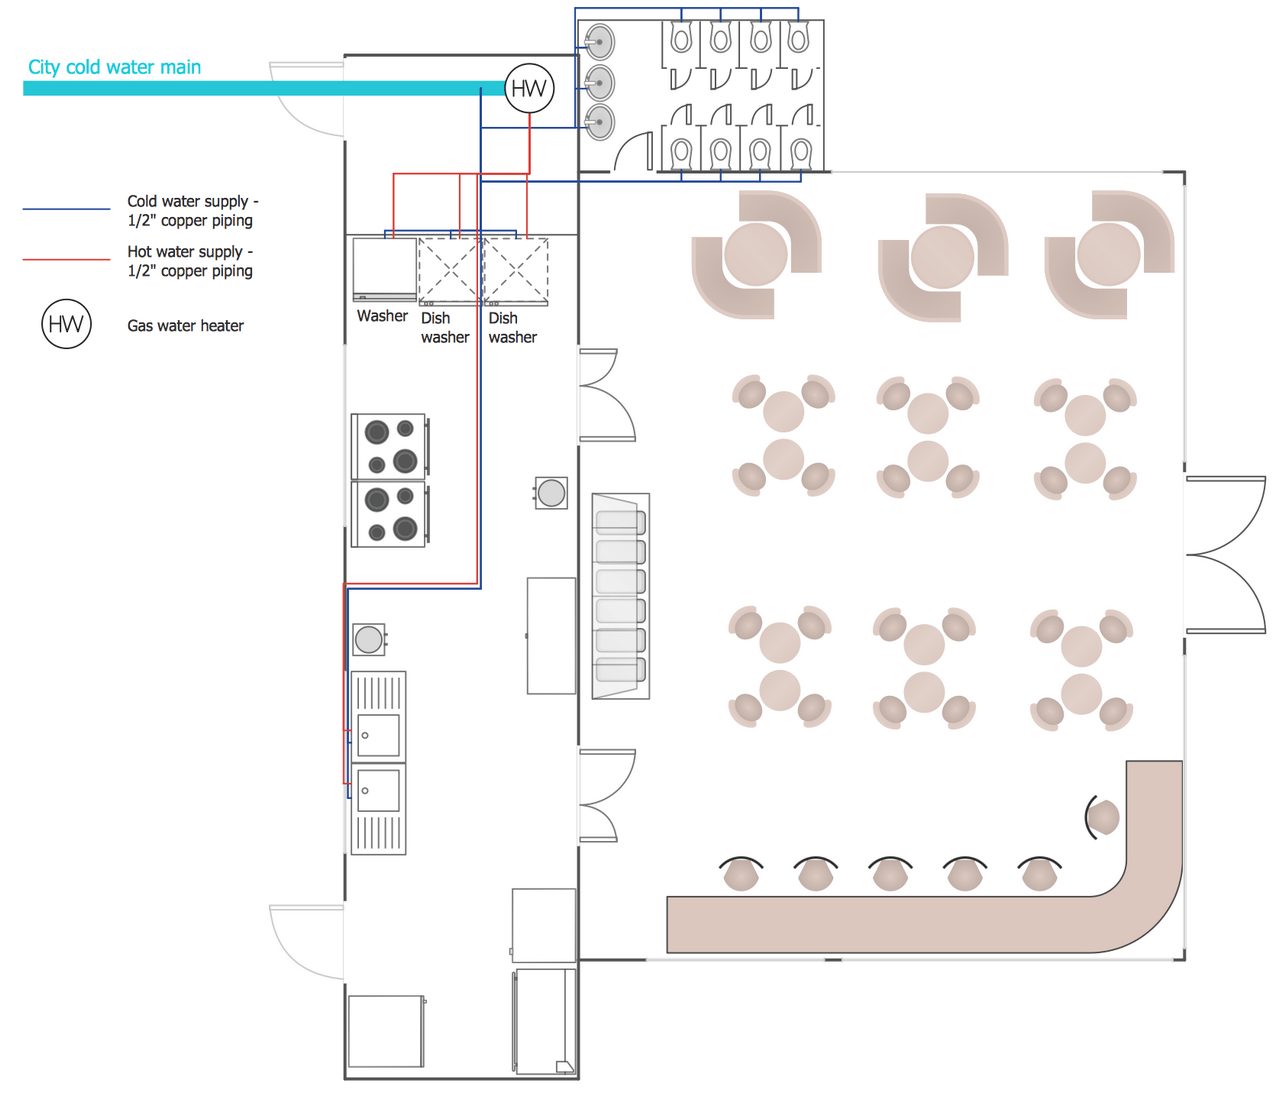 hight resolution of plumbing and piping plans solution conceptdraw com